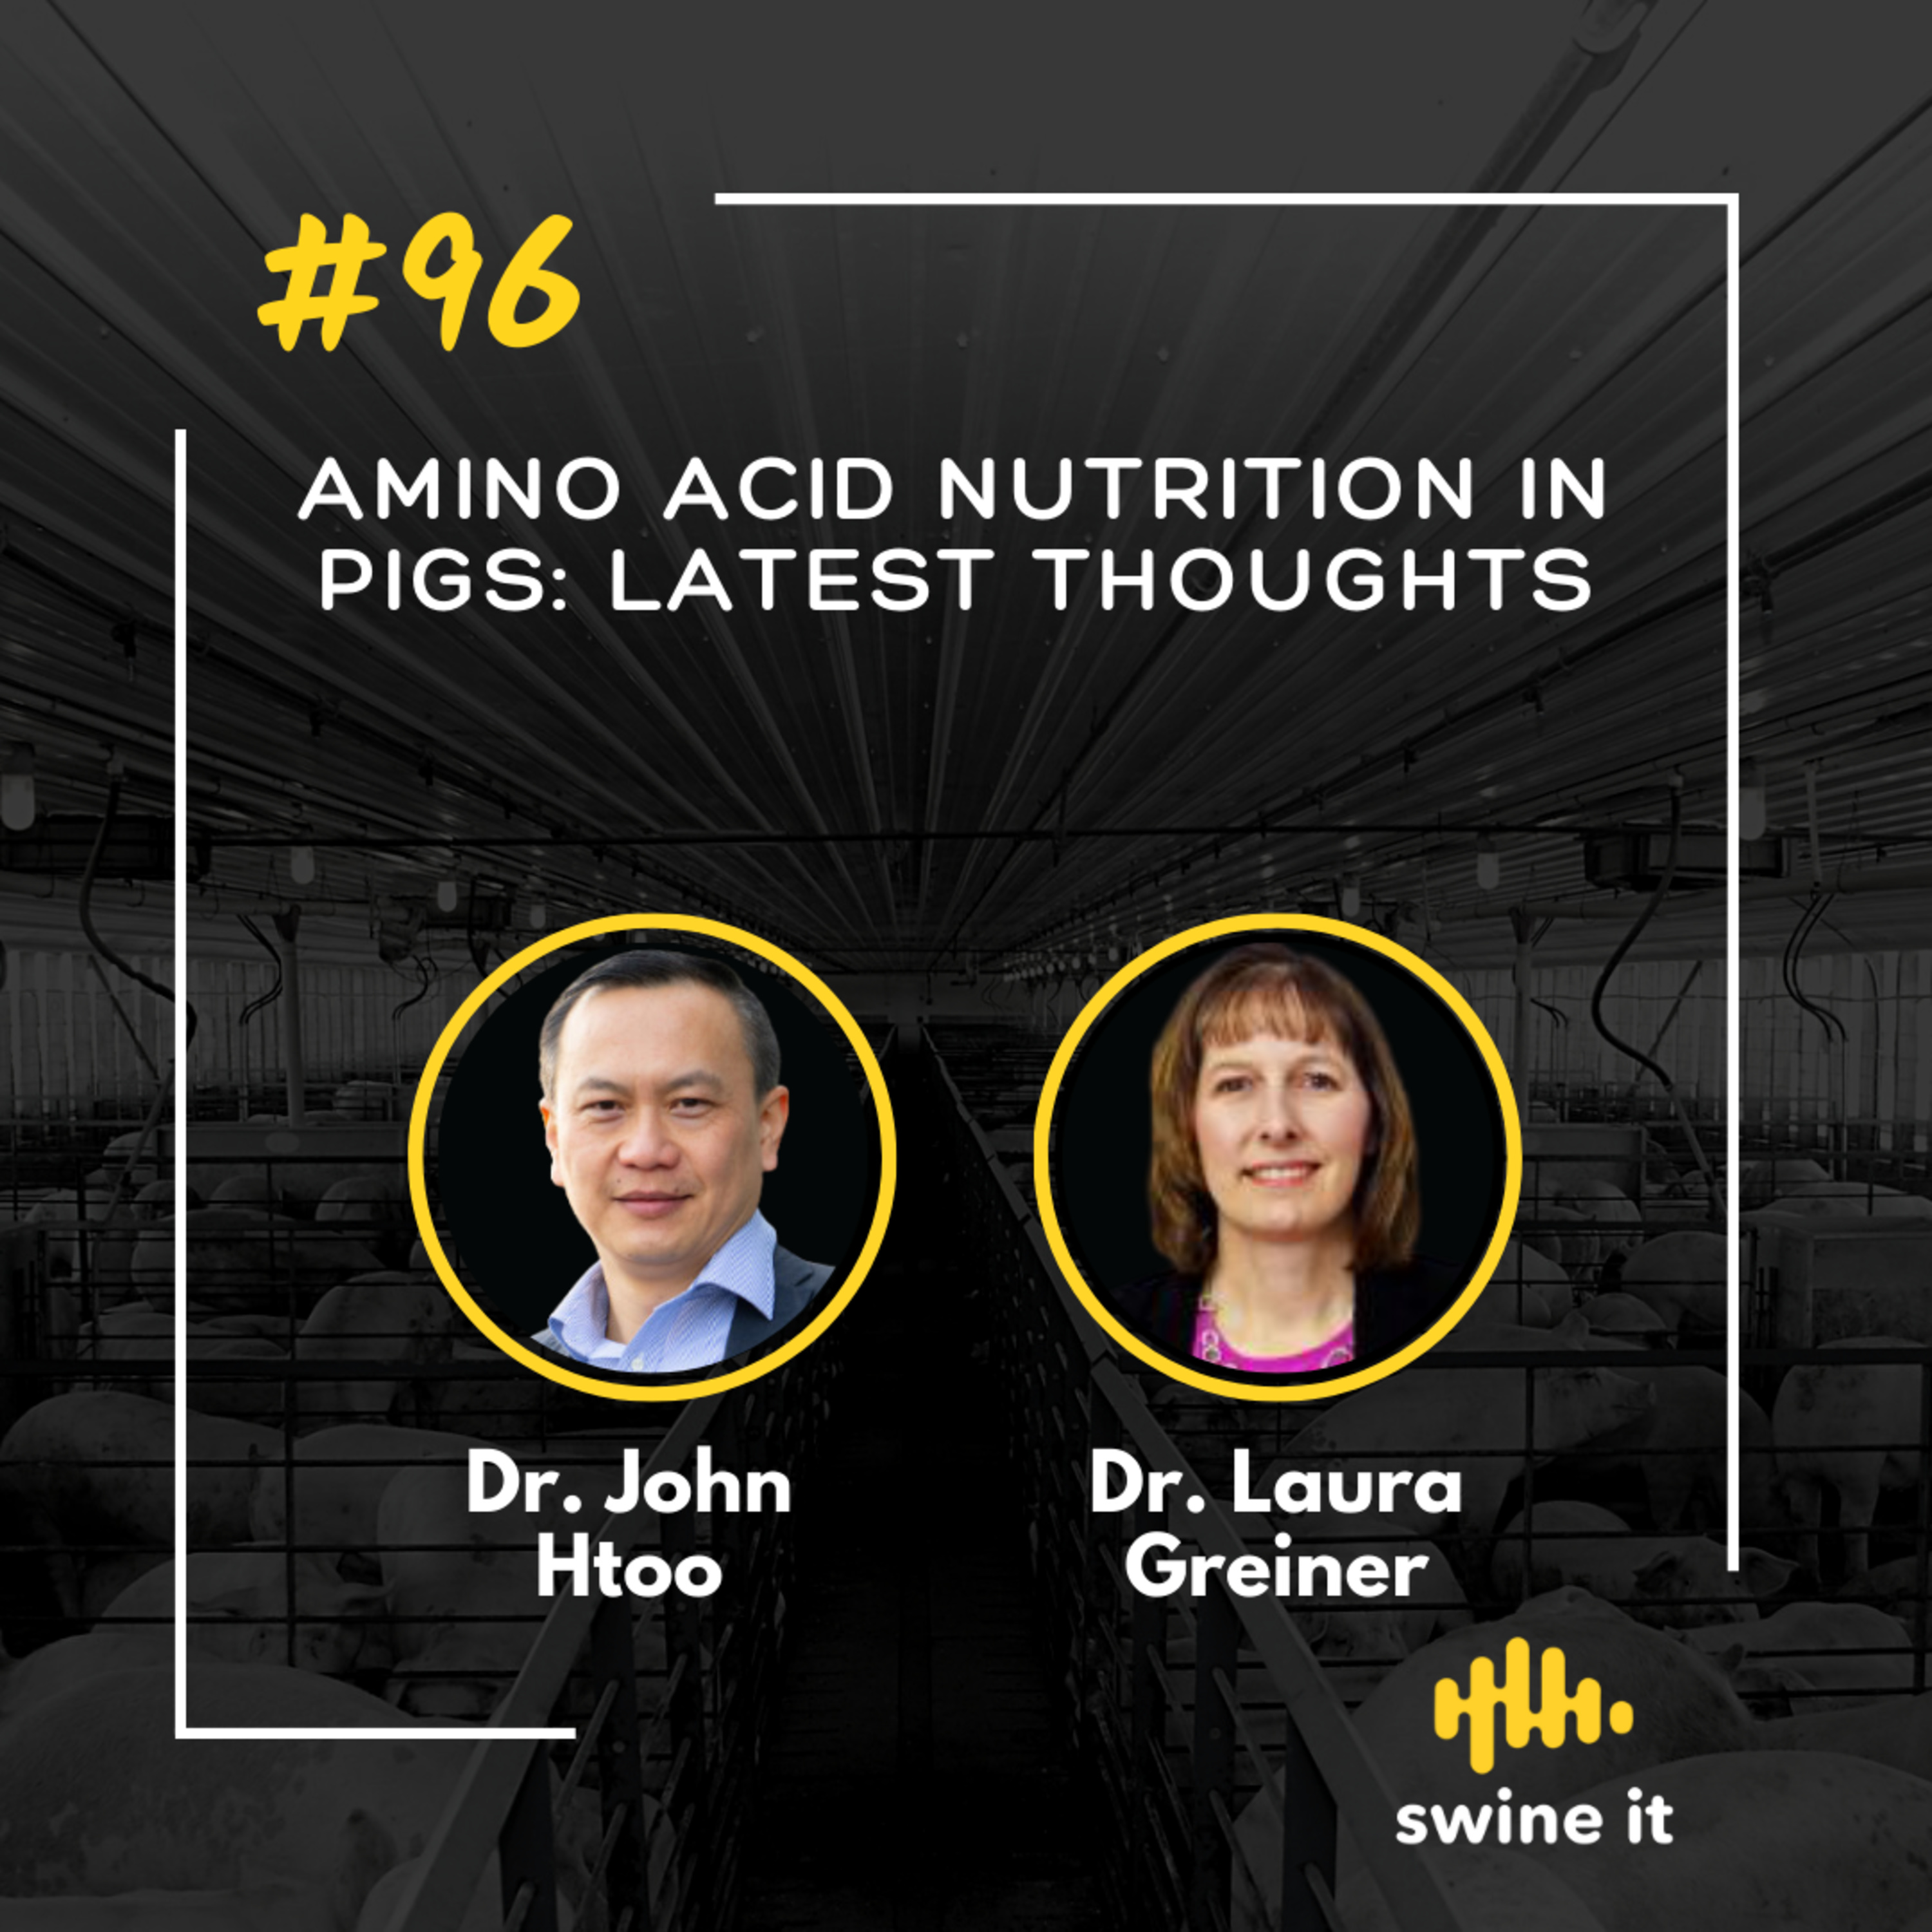 Amino acid nutrition in pigs: latest thoughts - Dr. John Htoo